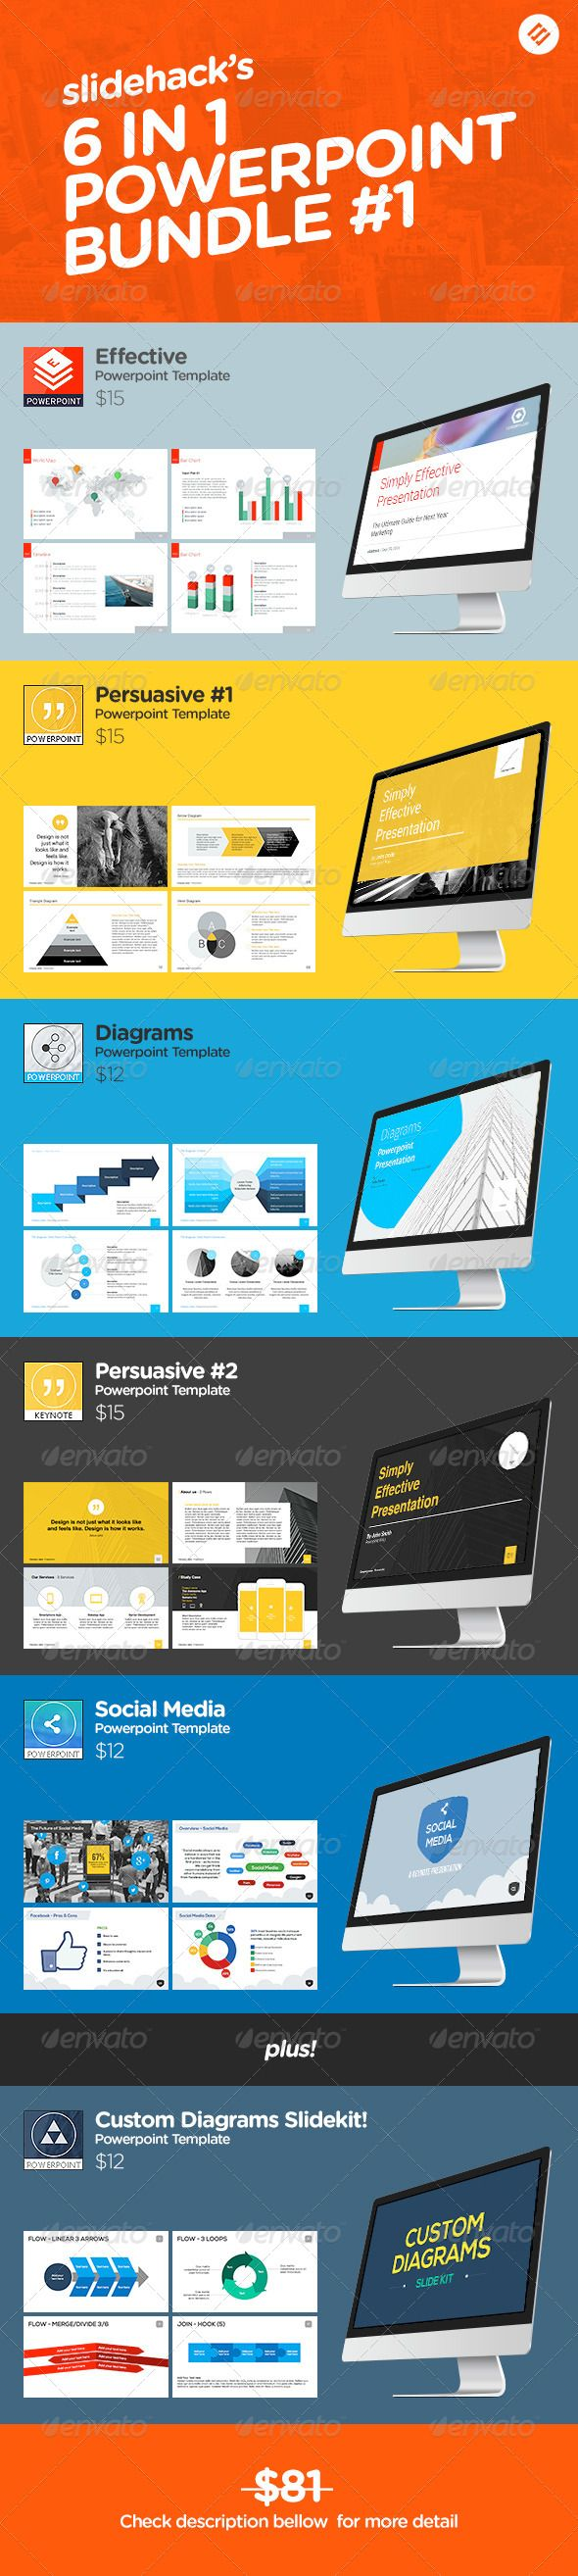 253 best ppt design images on pinterest | presentation design, Modern powerpoint